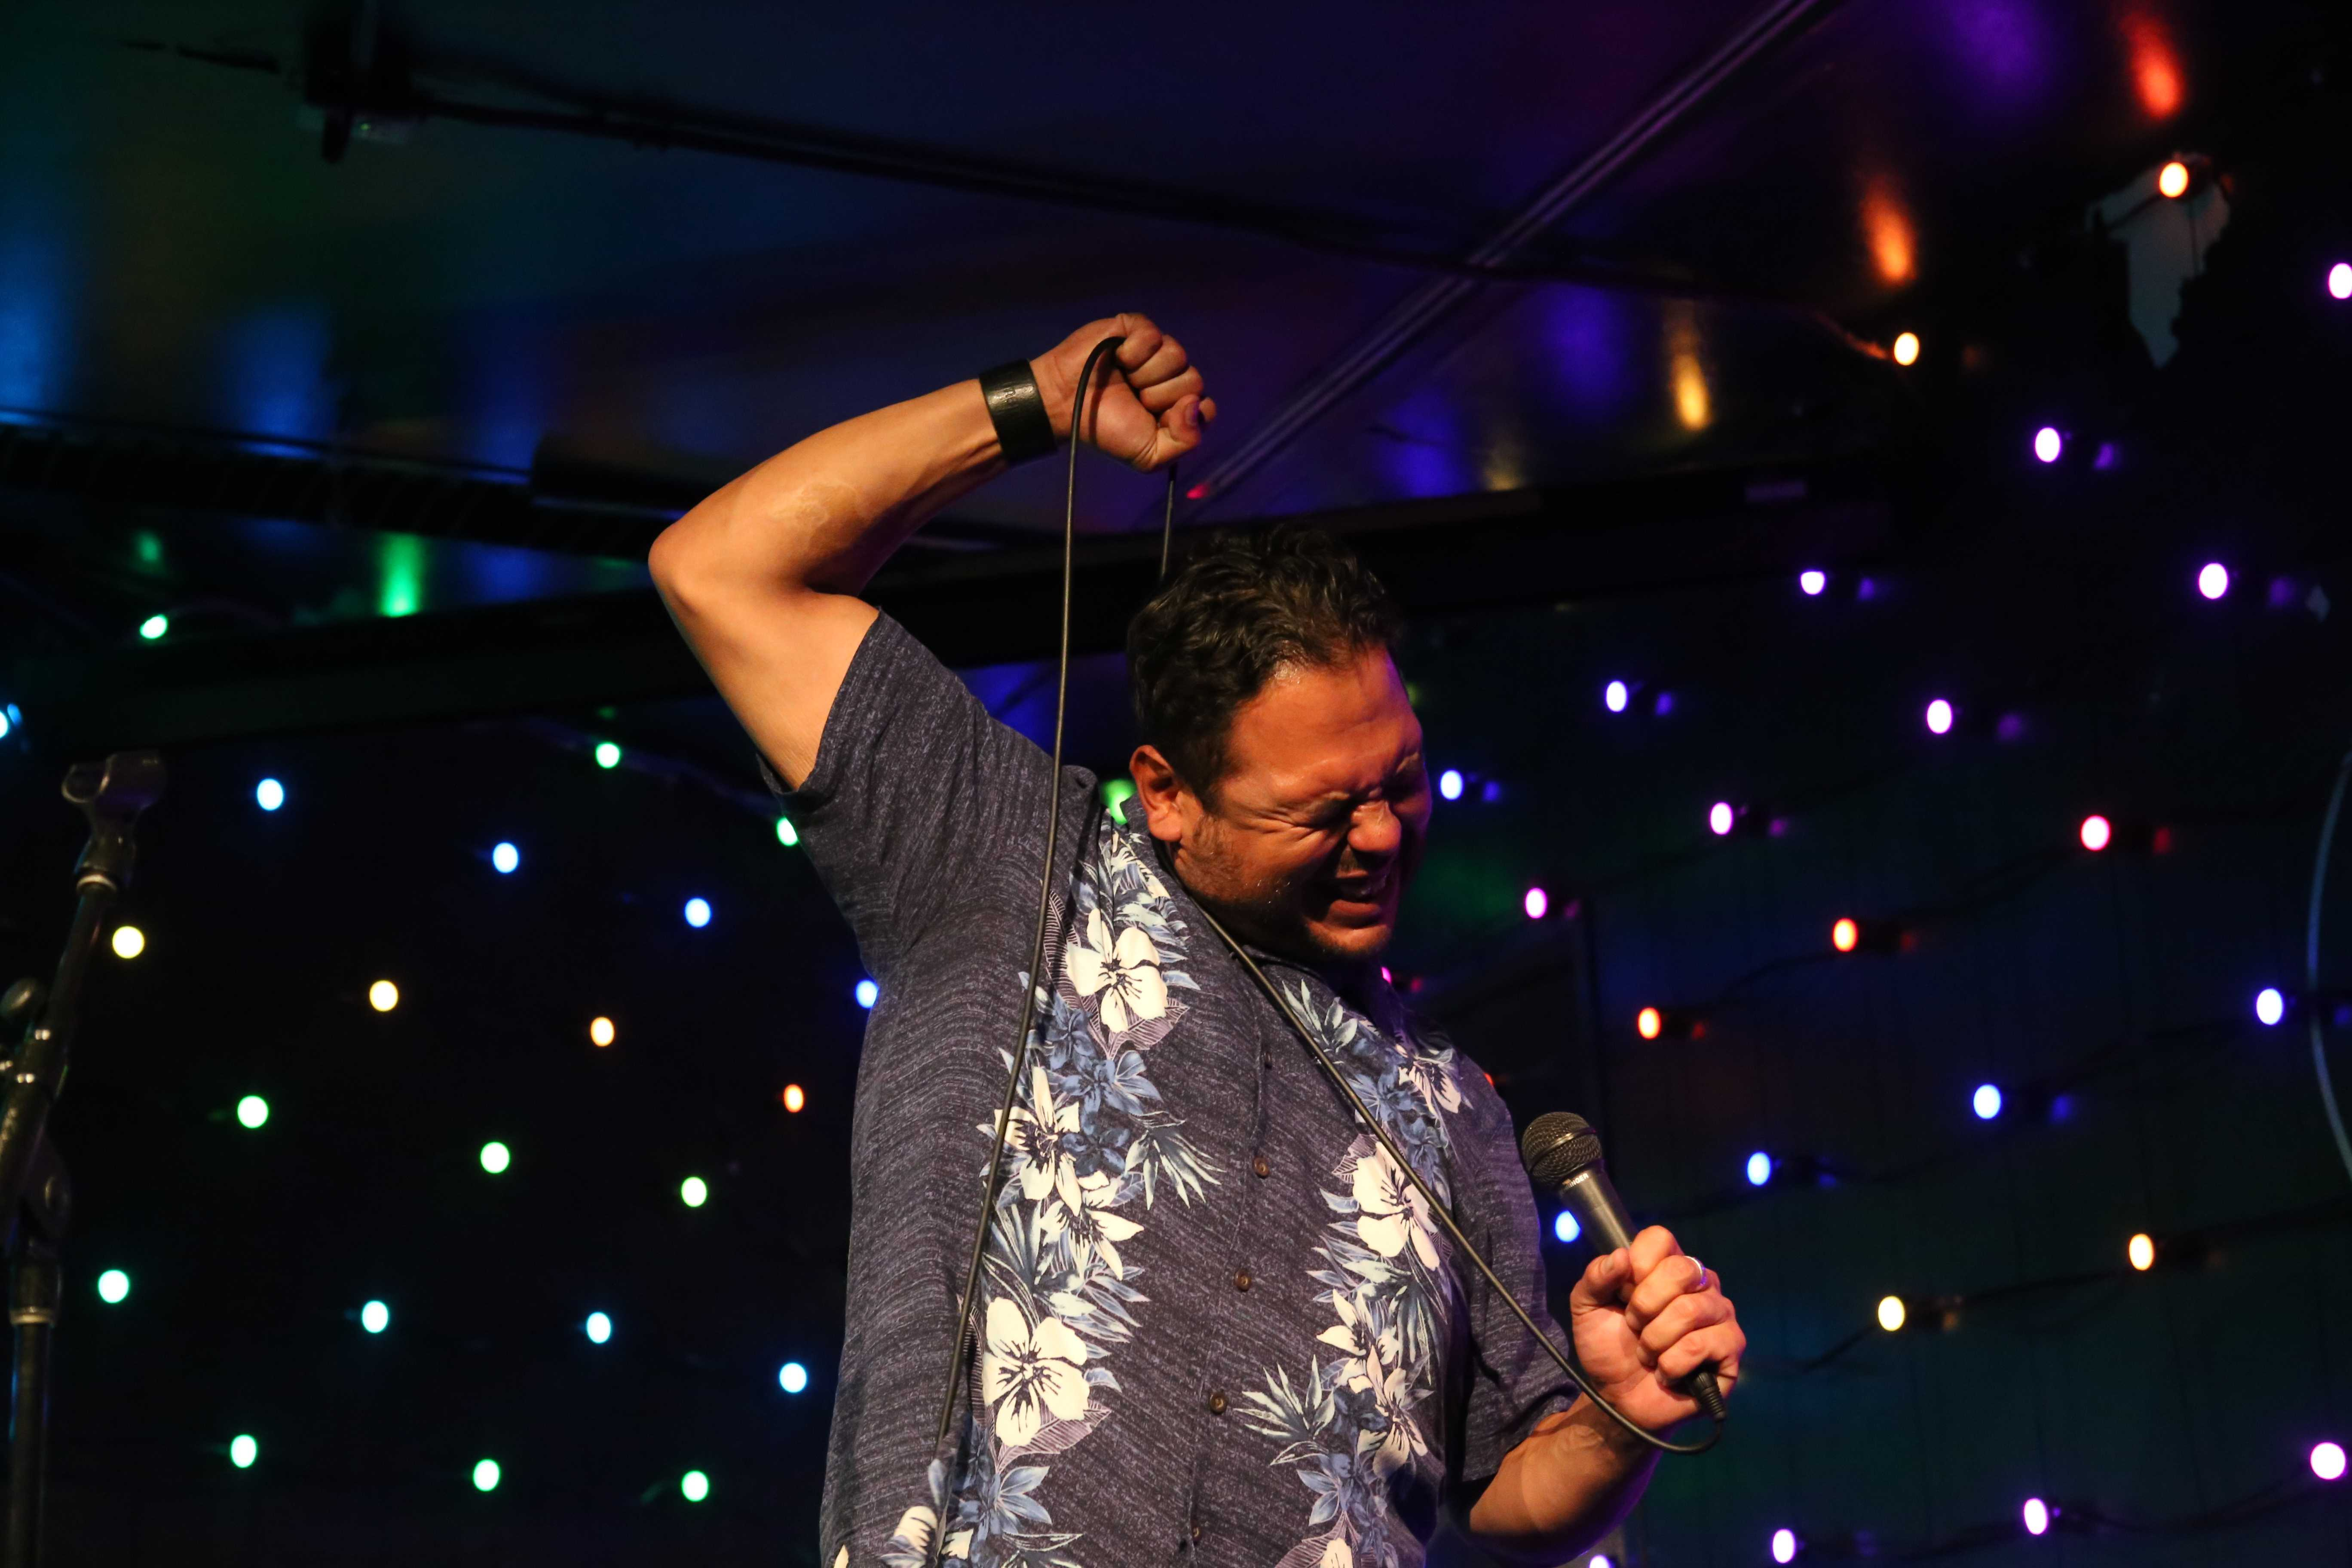 John Mesa performs during Comedy Night at The Depot SFSU on Wednesday, October 3rd, 2018. The event featured a variety of stand-up comedy routines. (Mira Laing/Golden Gate Xpress)